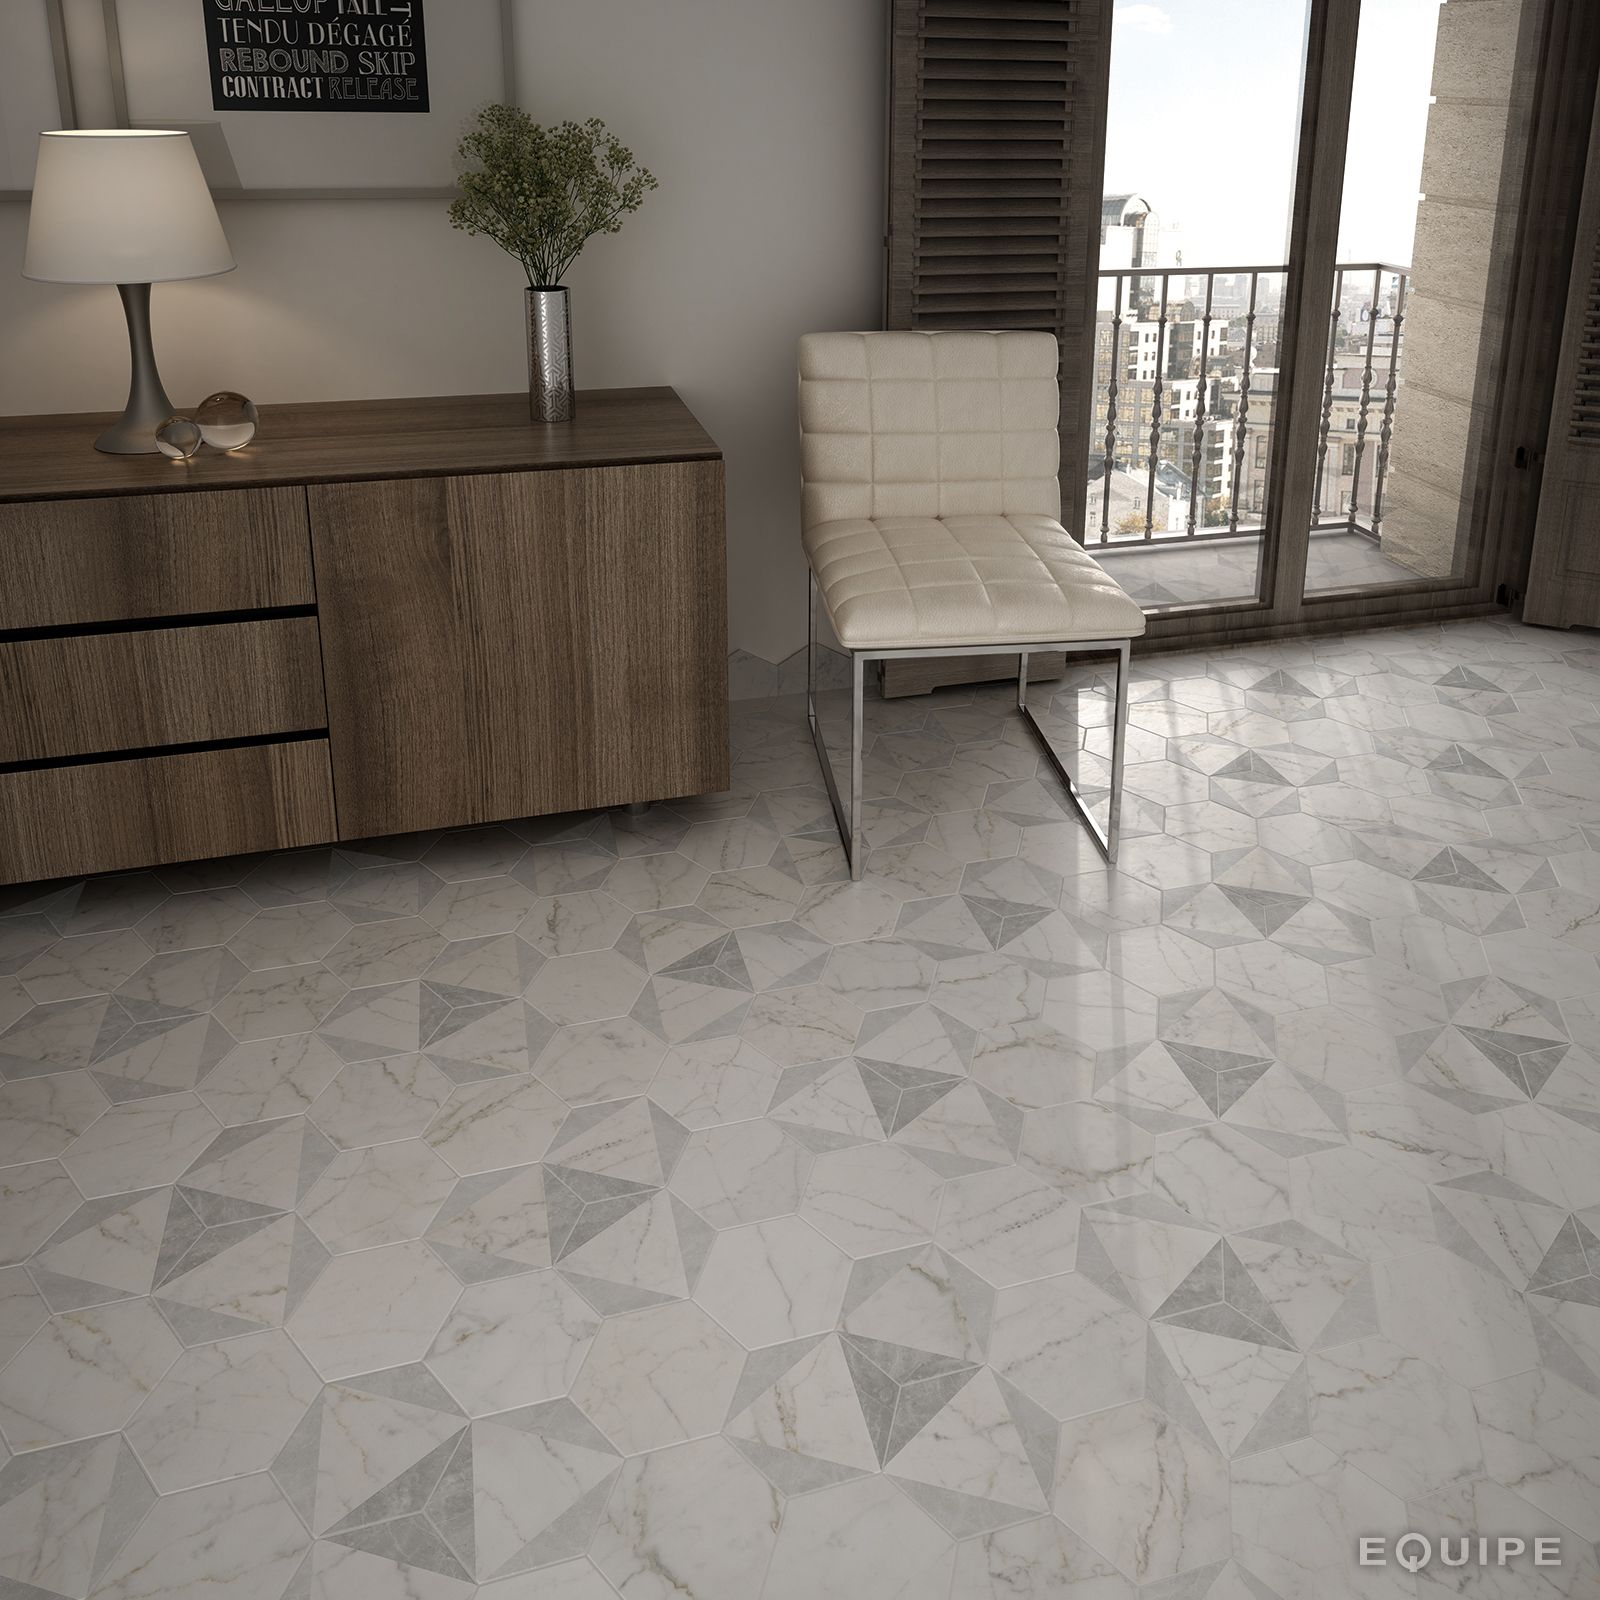 Carrara hexagon peak 175x20 architecture bevel architect somertile carra carrara hexagon peak porcelain floor and wall tile sq dailygadgetfo Image collections